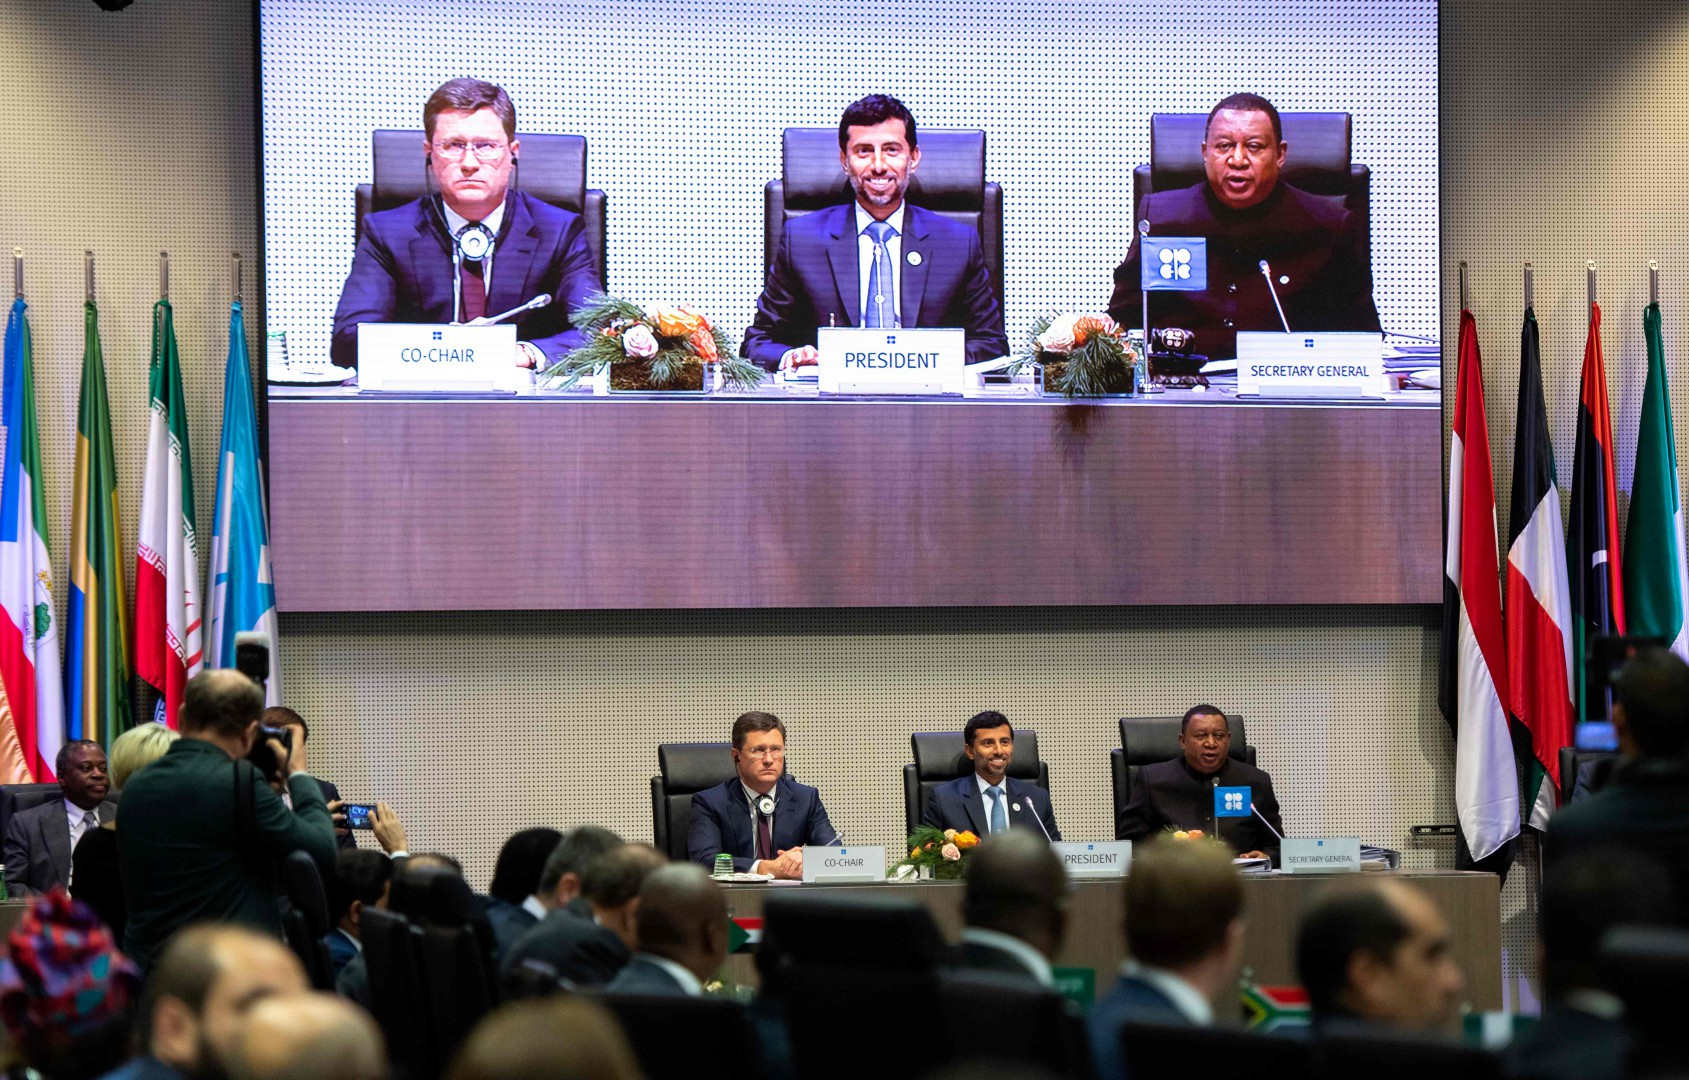 (LtoR) Russian Minister of Energy of Russia Alexander Novak, Organization of the Petroleum Exporting Countries' (OPEC) President UAE Energy Minister Suhail al-Mazroueiand OPEC Secretary General Mohammed Sanusi Barkindo of Nigeria speak during a ministerial level meeting during with OPEC members and non members during the 175th OPEC Conference on December 7, 2018 in Vienna, Austria. (Photo by JOE KLAMAR / AFP)